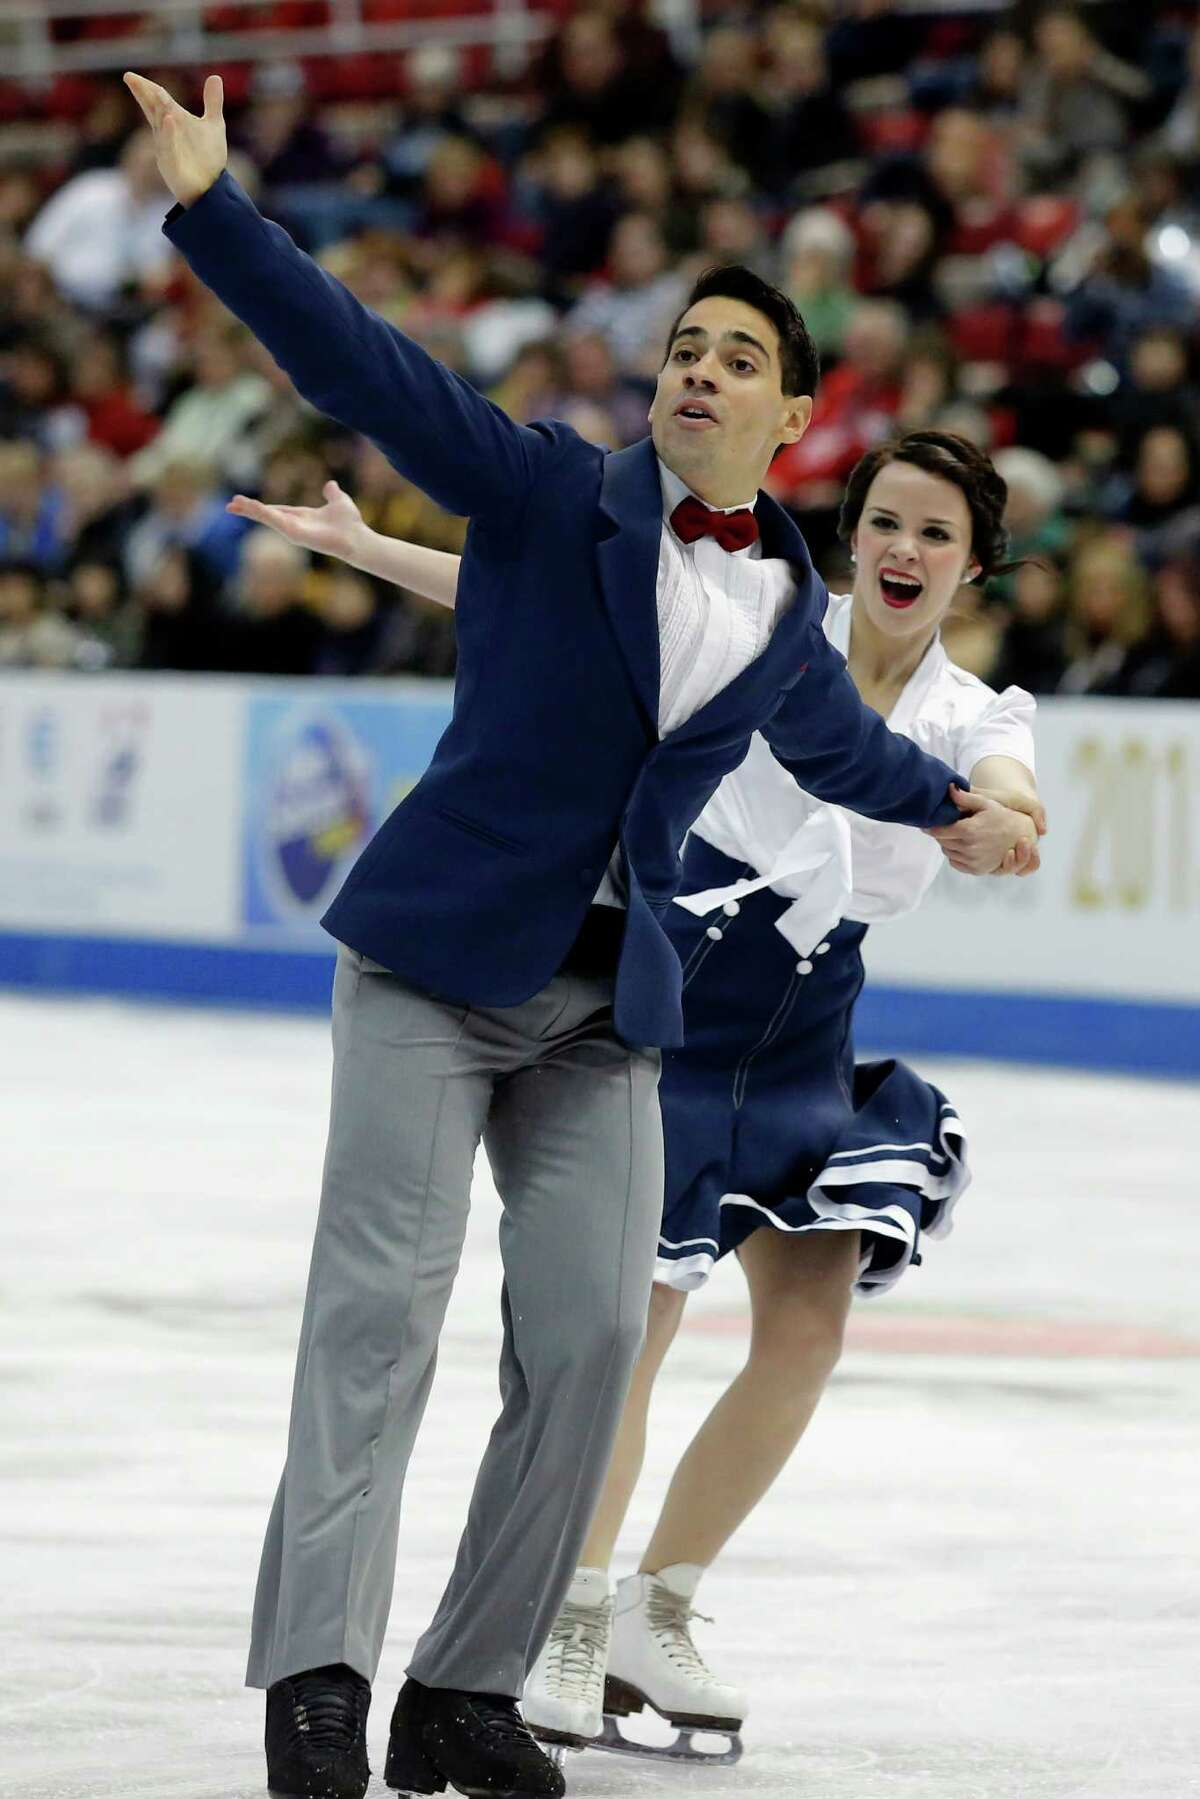 Anna Cappellini and Luca Lanotte perform in the short dance program at the Skate America figure skating competition in Detroit, Friday, Oct. 18, 2013. The pair took second place in the short dance program. (AP Photo/Duane Burleson) ORG XMIT: MIDB114